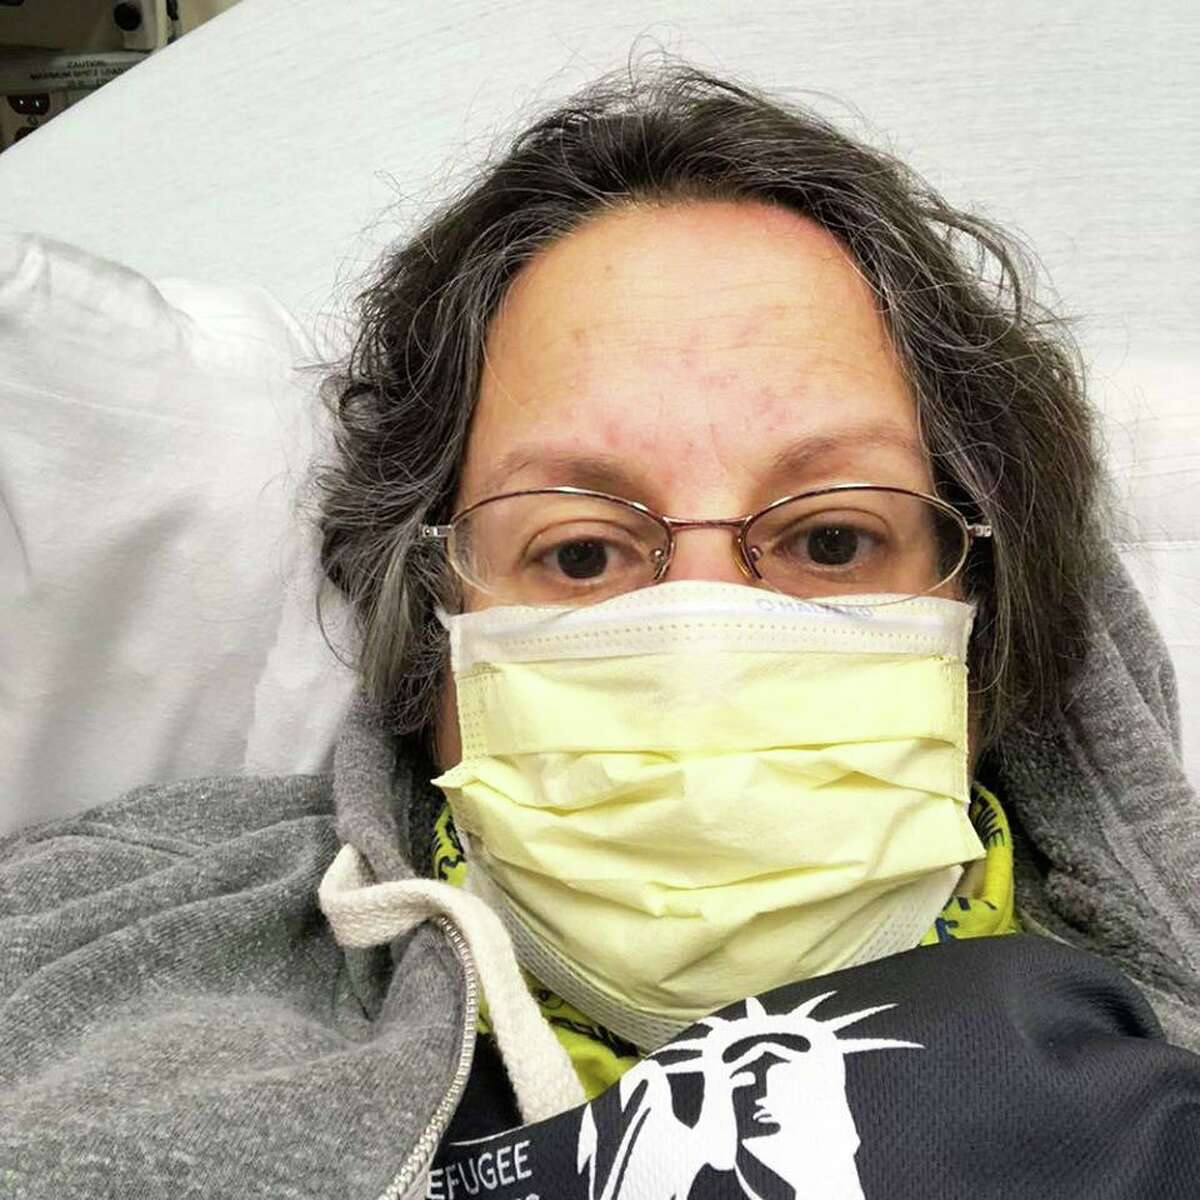 Kathy Flaherty of Newington, executive director of the Connecticut Legal Rights Project in Middletown, is presumptively positive for coronavirus but has gone through a long saga of not getting tested. Her husband, James Valentino, now has symptoms. Both were tested April 1.